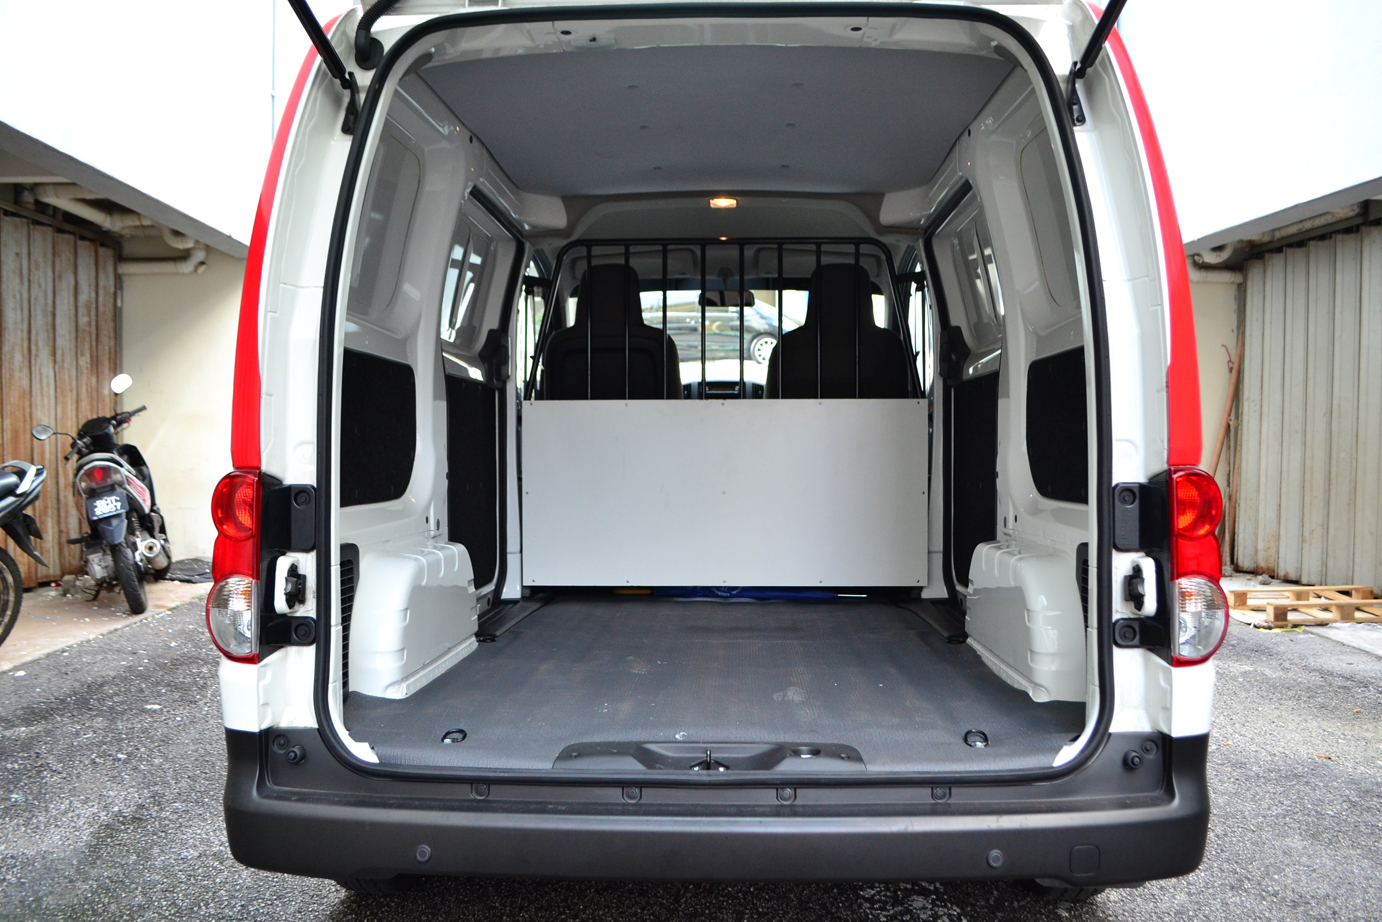 The Nissan Nv200 Limitless Potential Kensomuse